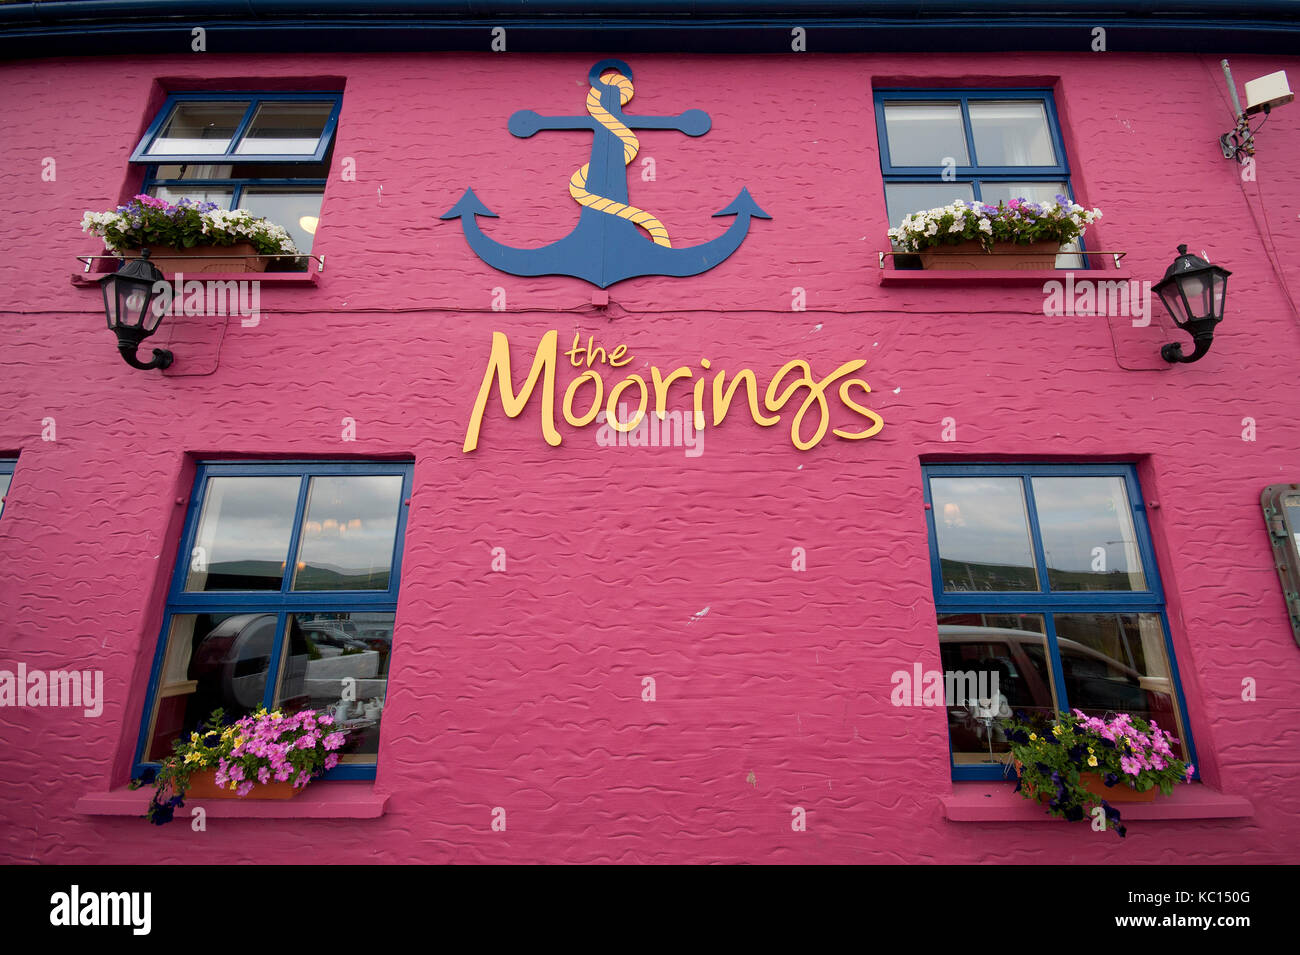 Facade of The Moorings guesthouse, Portmagee, County Kerry, Ireland - Stock Image